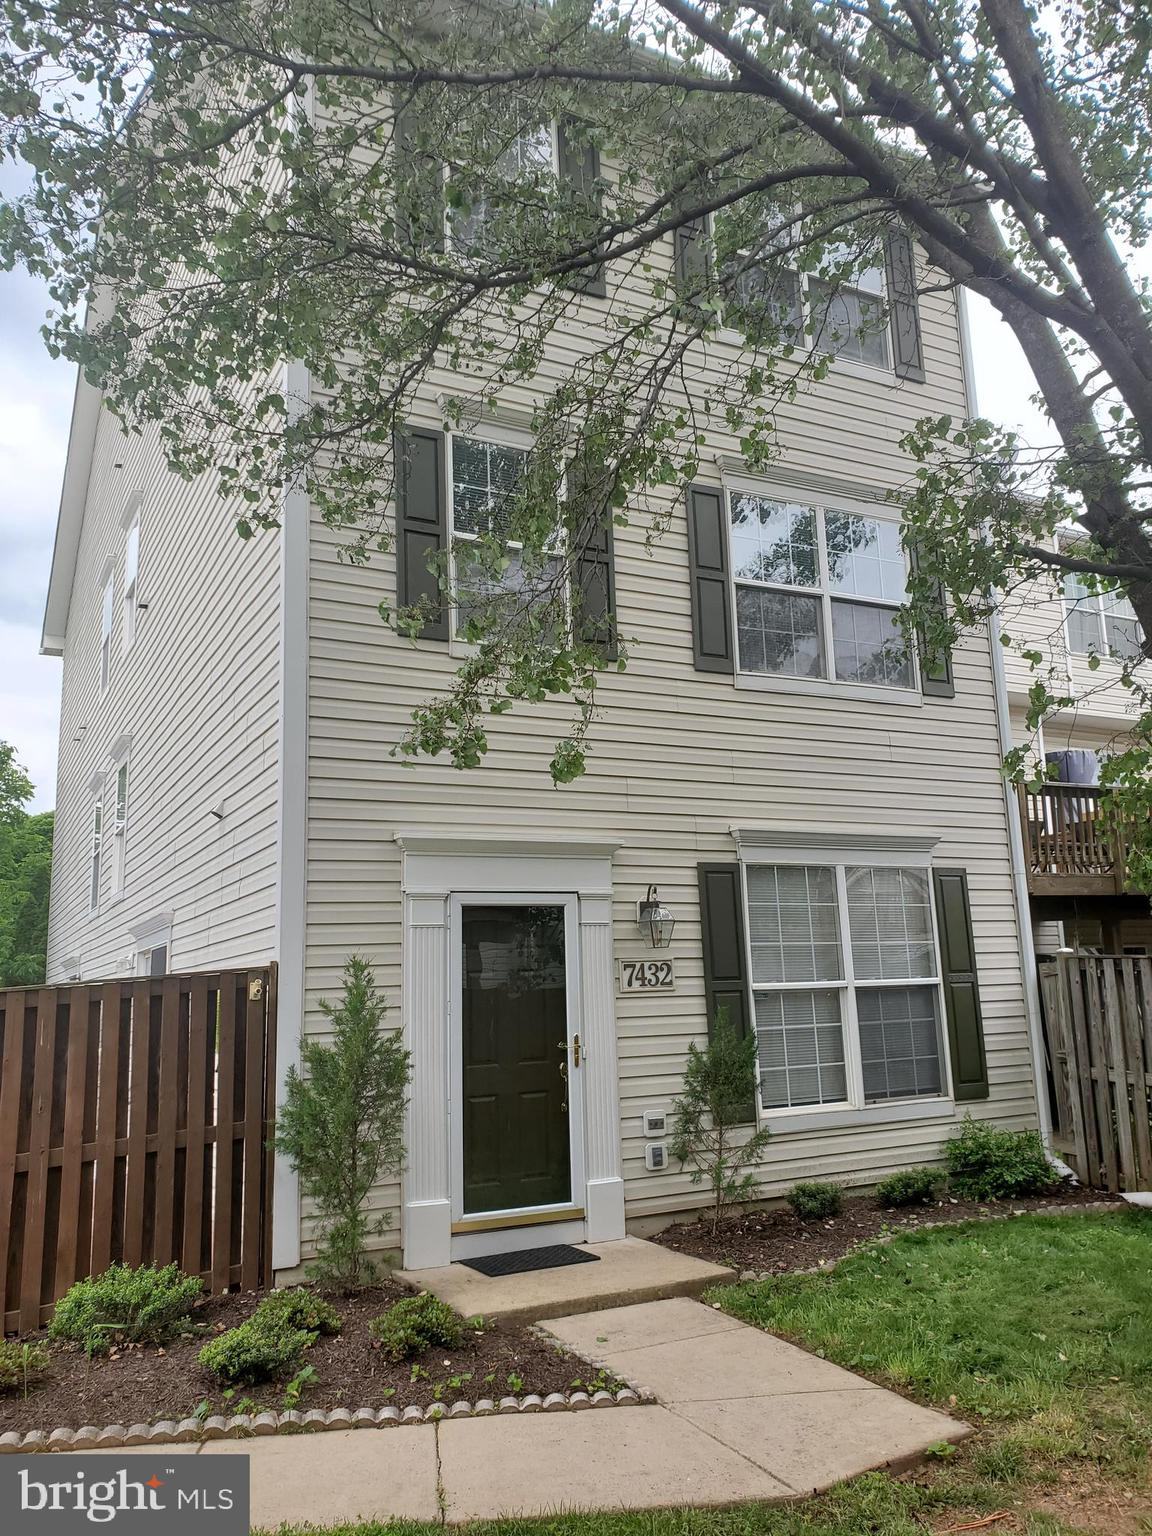 Great location near shopping, public transportation and access to Rt 66. Spacious 3 bedroom, 2 1/2 b